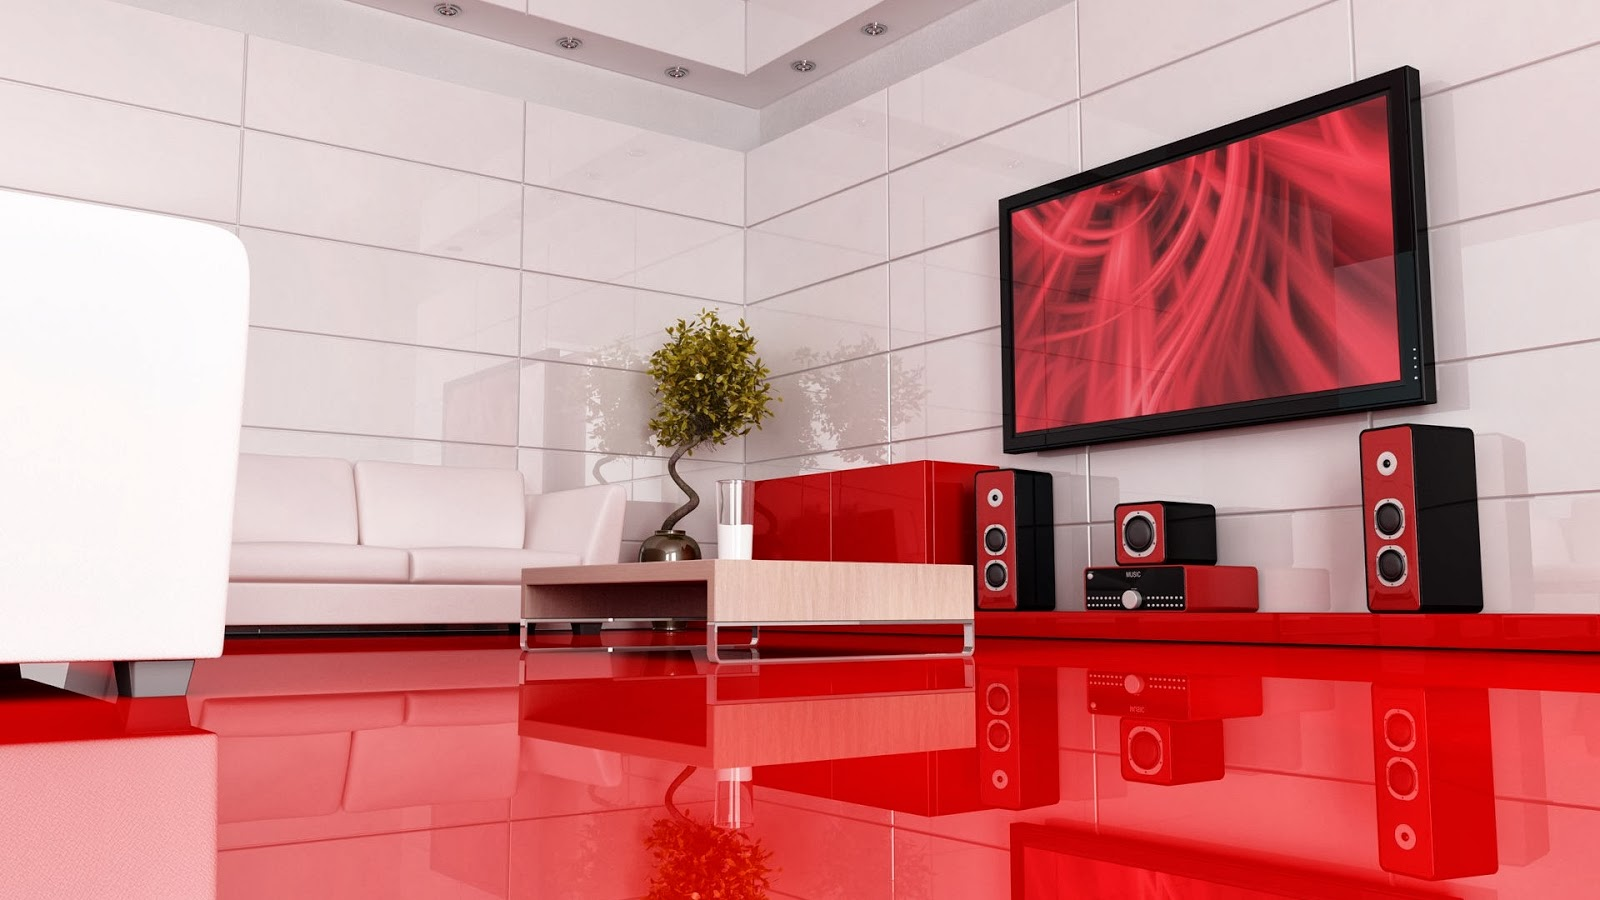 DESIGN DE AMBIENTES (SALA DE TV / HOME THEATER) title=